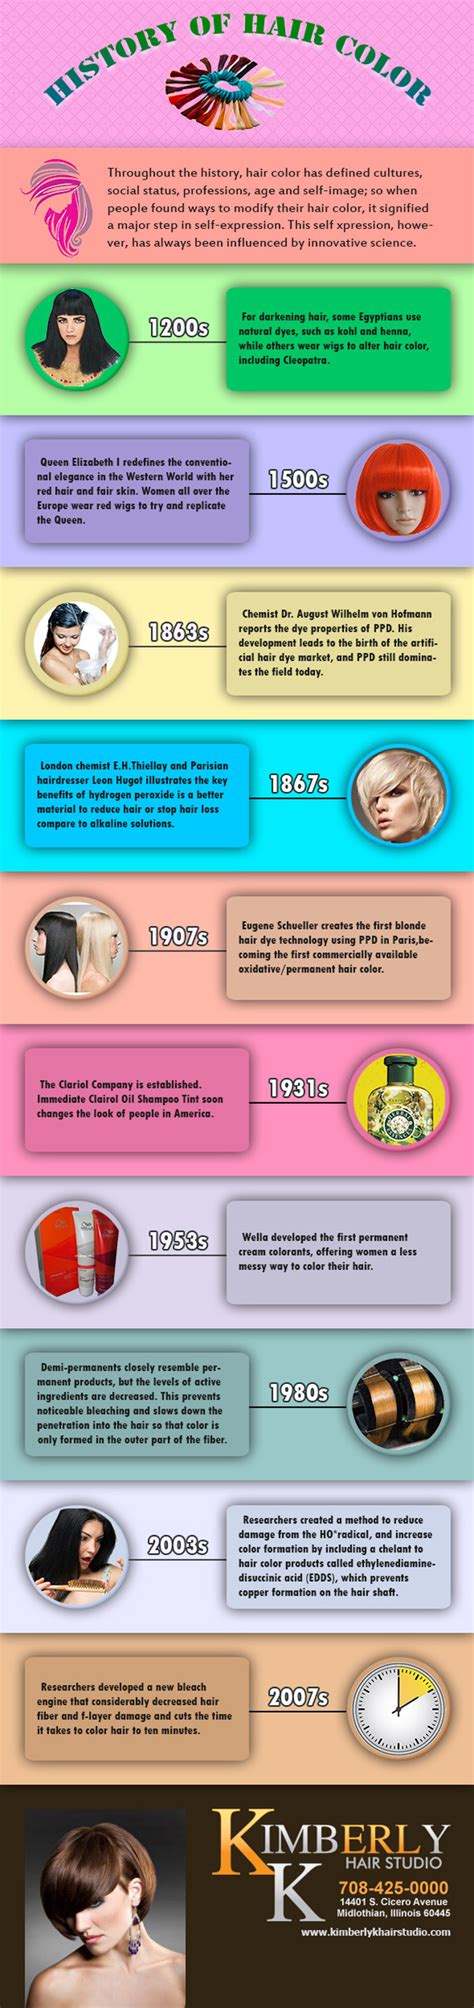 Hair Dye History by Can You Lighten Your Hair With Lime Juice Hrfnd